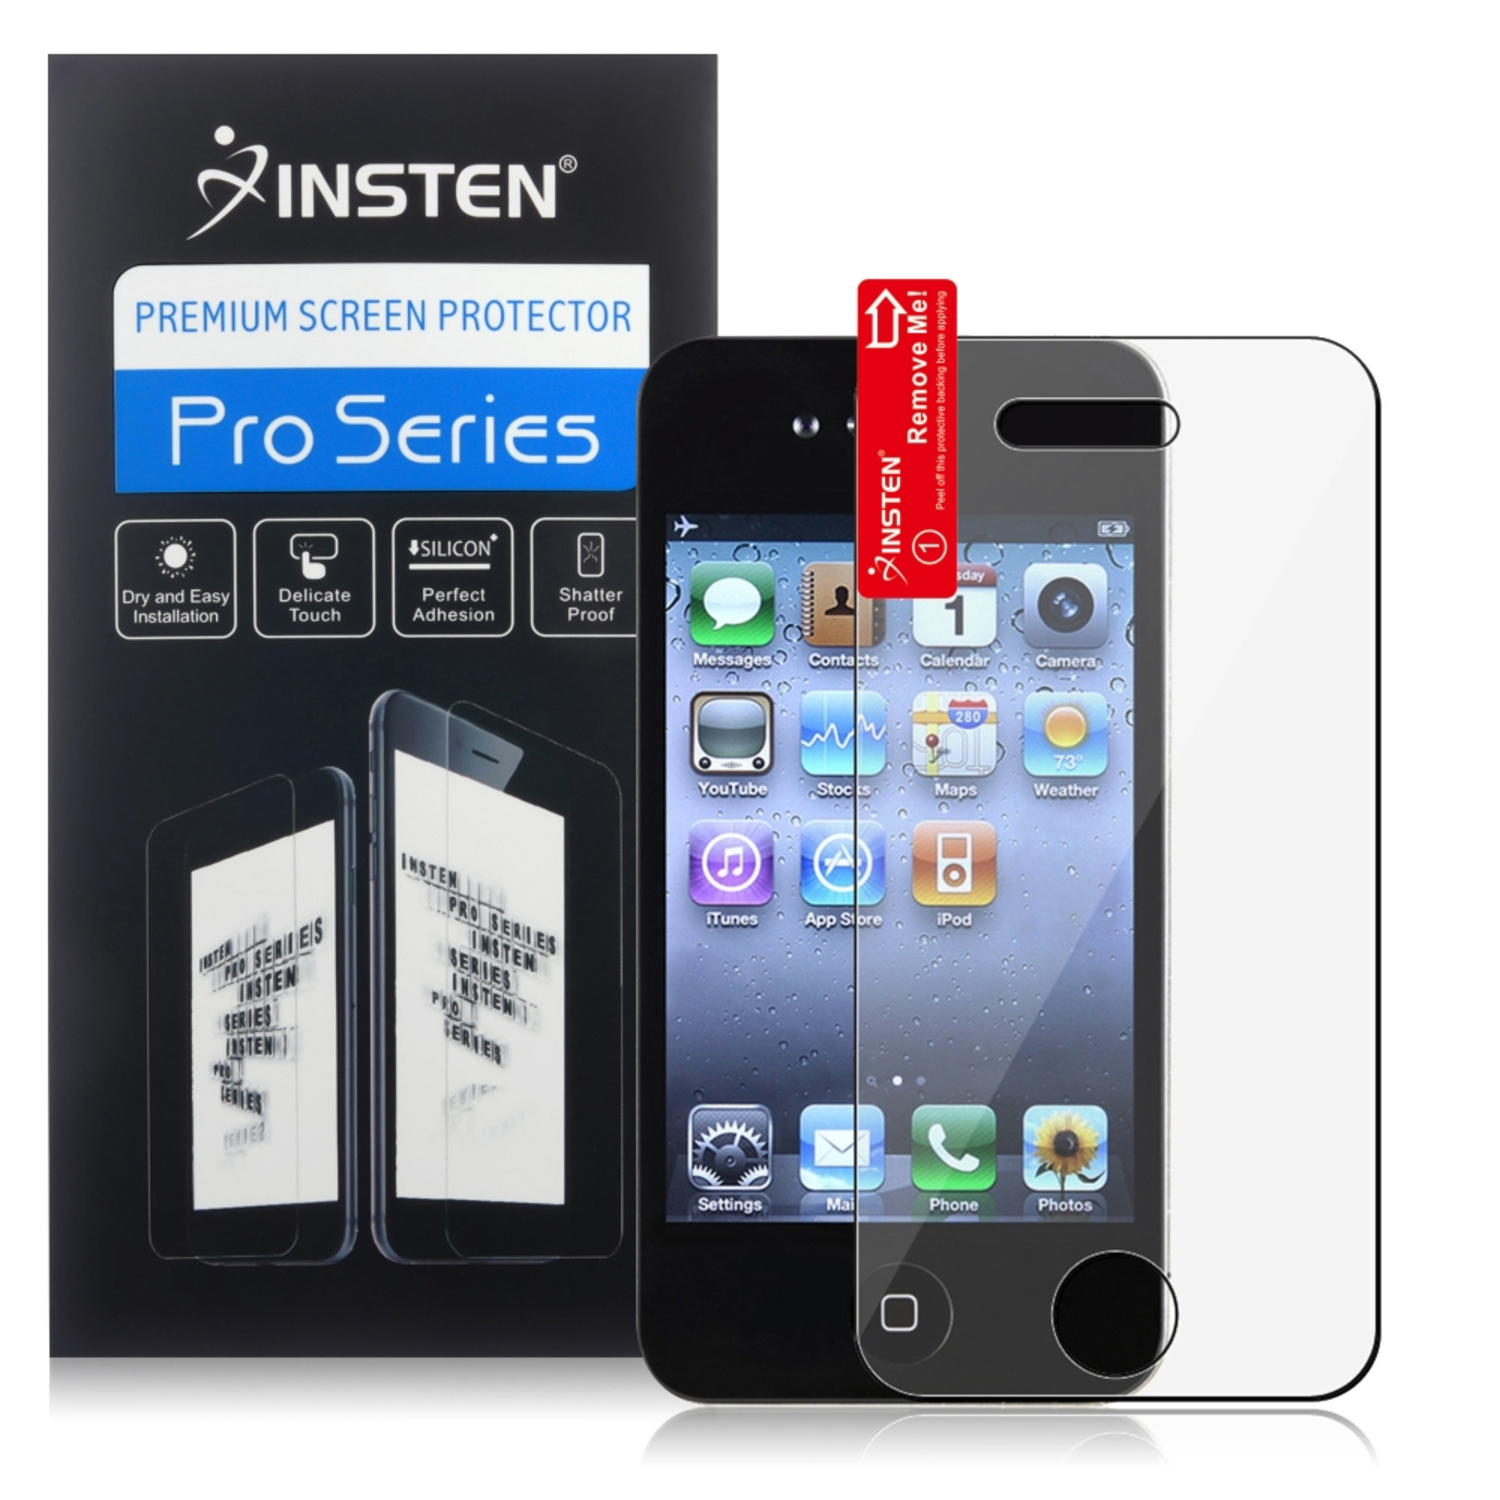 Insten Clear Transparent New Anti-Scratch Screen Film Guard Shield Cover Protector For iPhone 4 4s